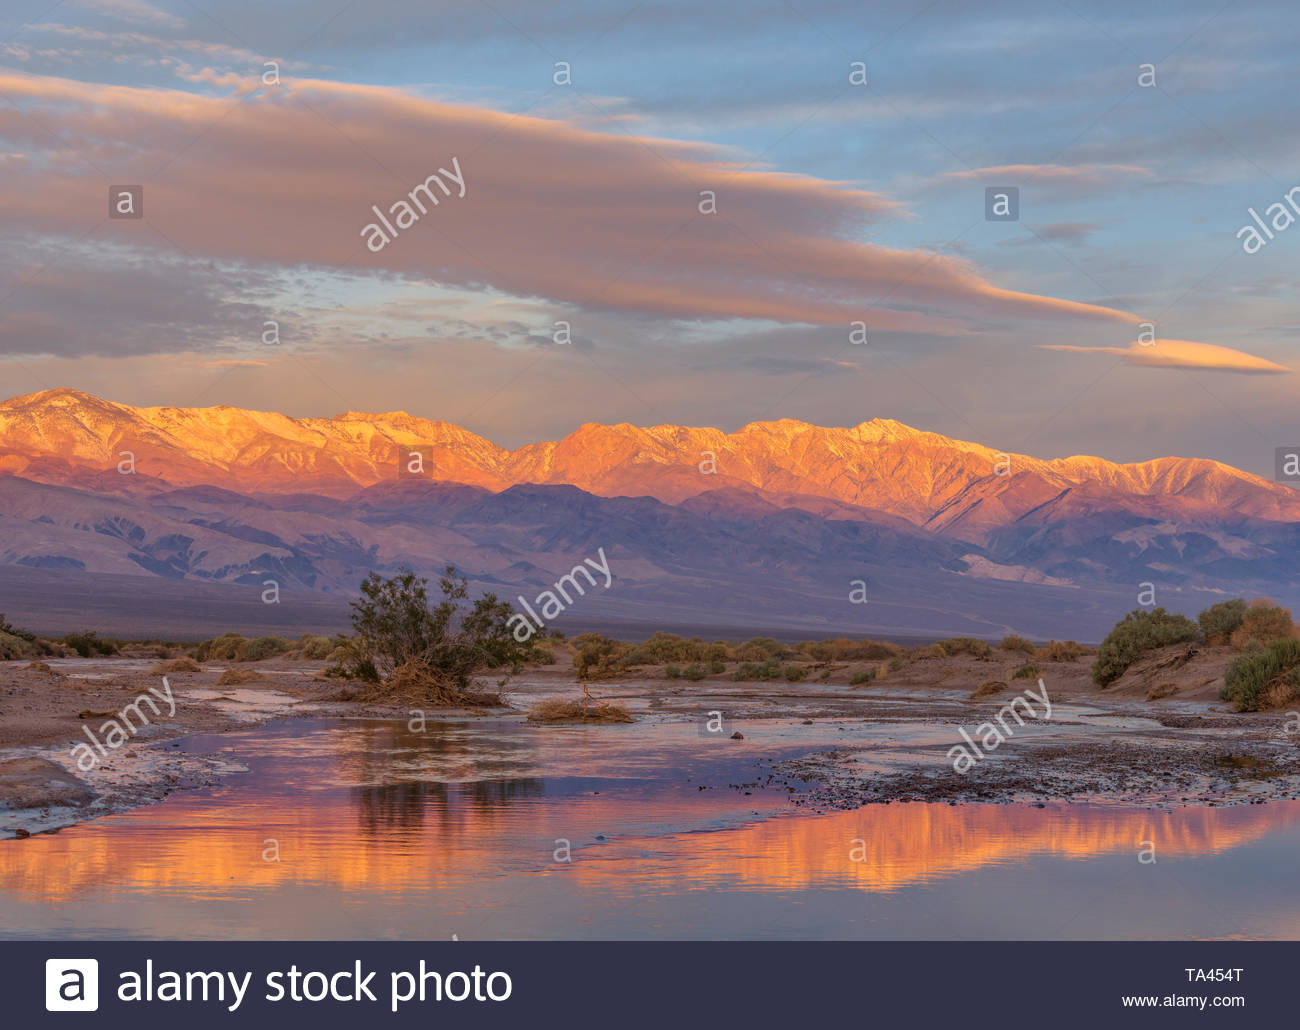 The Panamint Range and Amargosa River at Dawn, Death Valley National Park, California Stock Photo